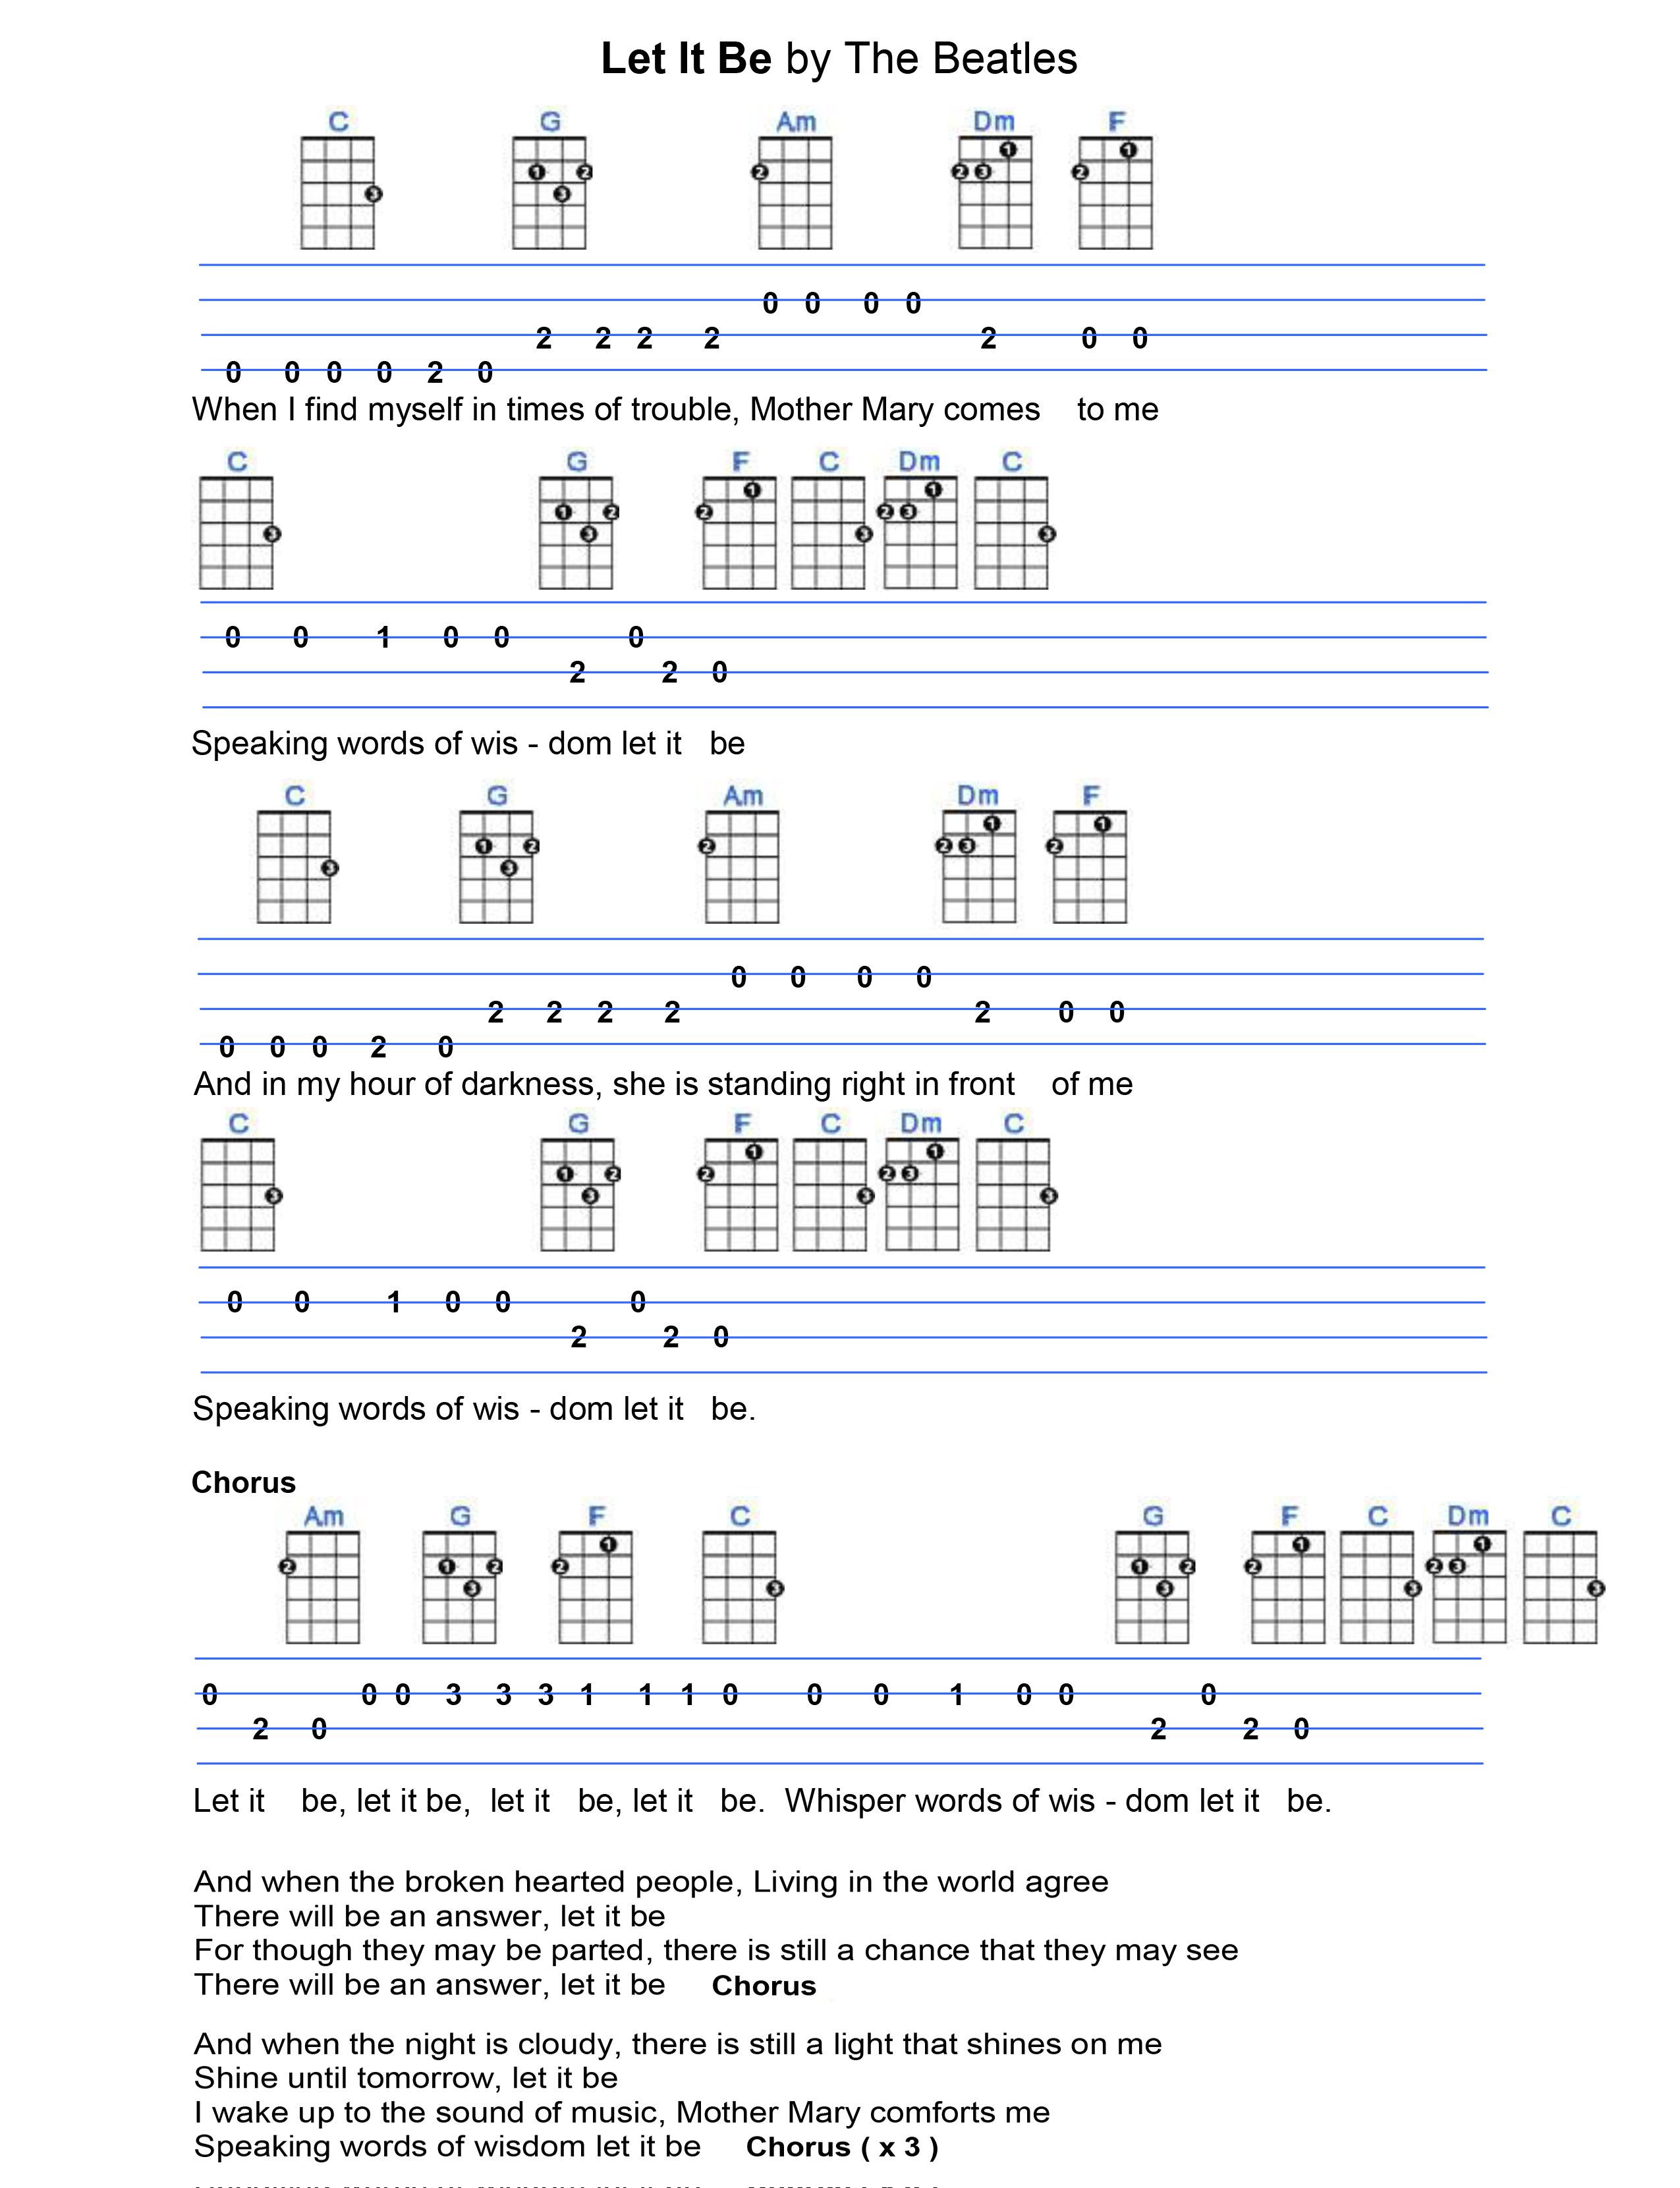 Contents 29 pages people that might find this book useful contents 29 pages people that might find this book useful ukulele teachers can print the book for their students beginner ukulele players can w hexwebz Choice Image